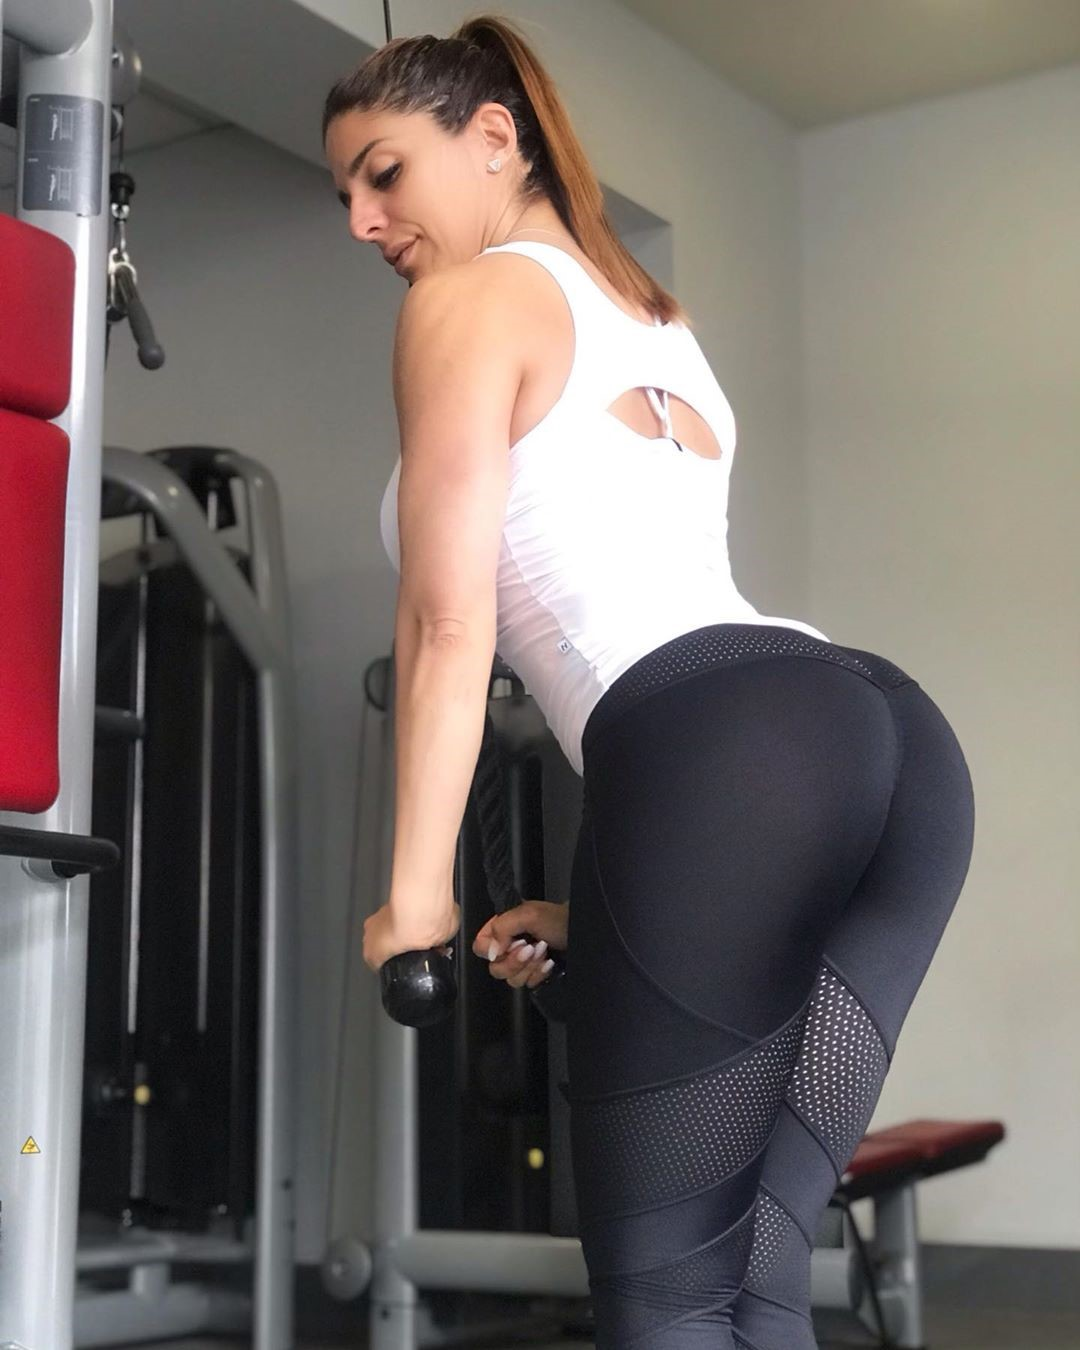 Sonia-Amat-Wallpapers-Insta-Fit-Bio-5